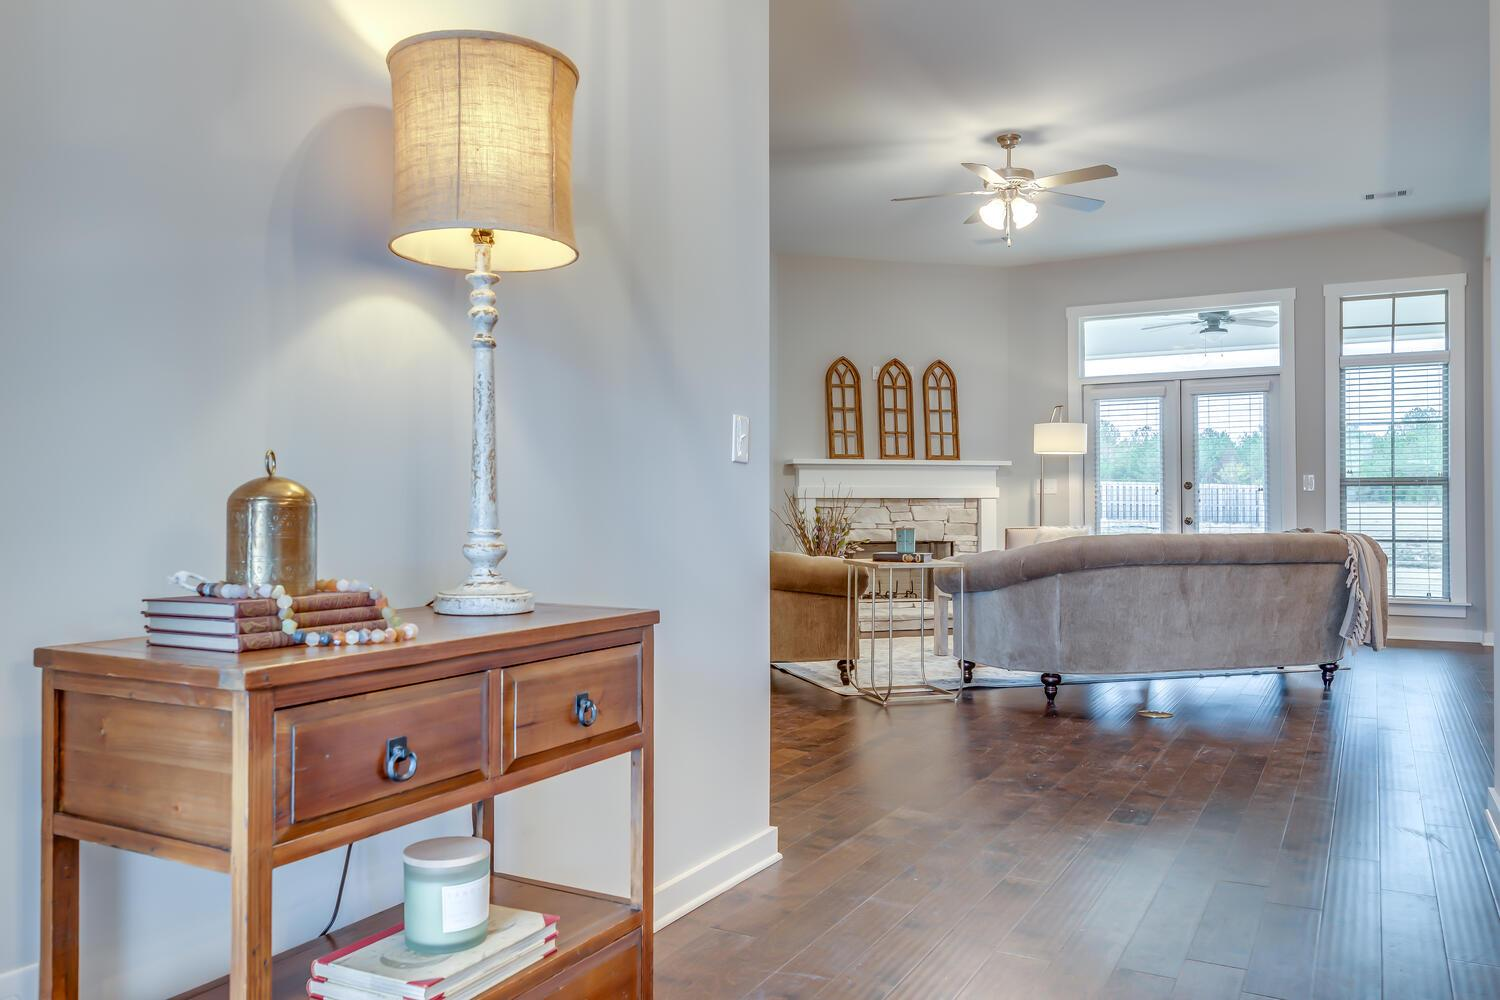 Bedroom featured in the Osceola New Park By Lowder New Homes in Montgomery, AL